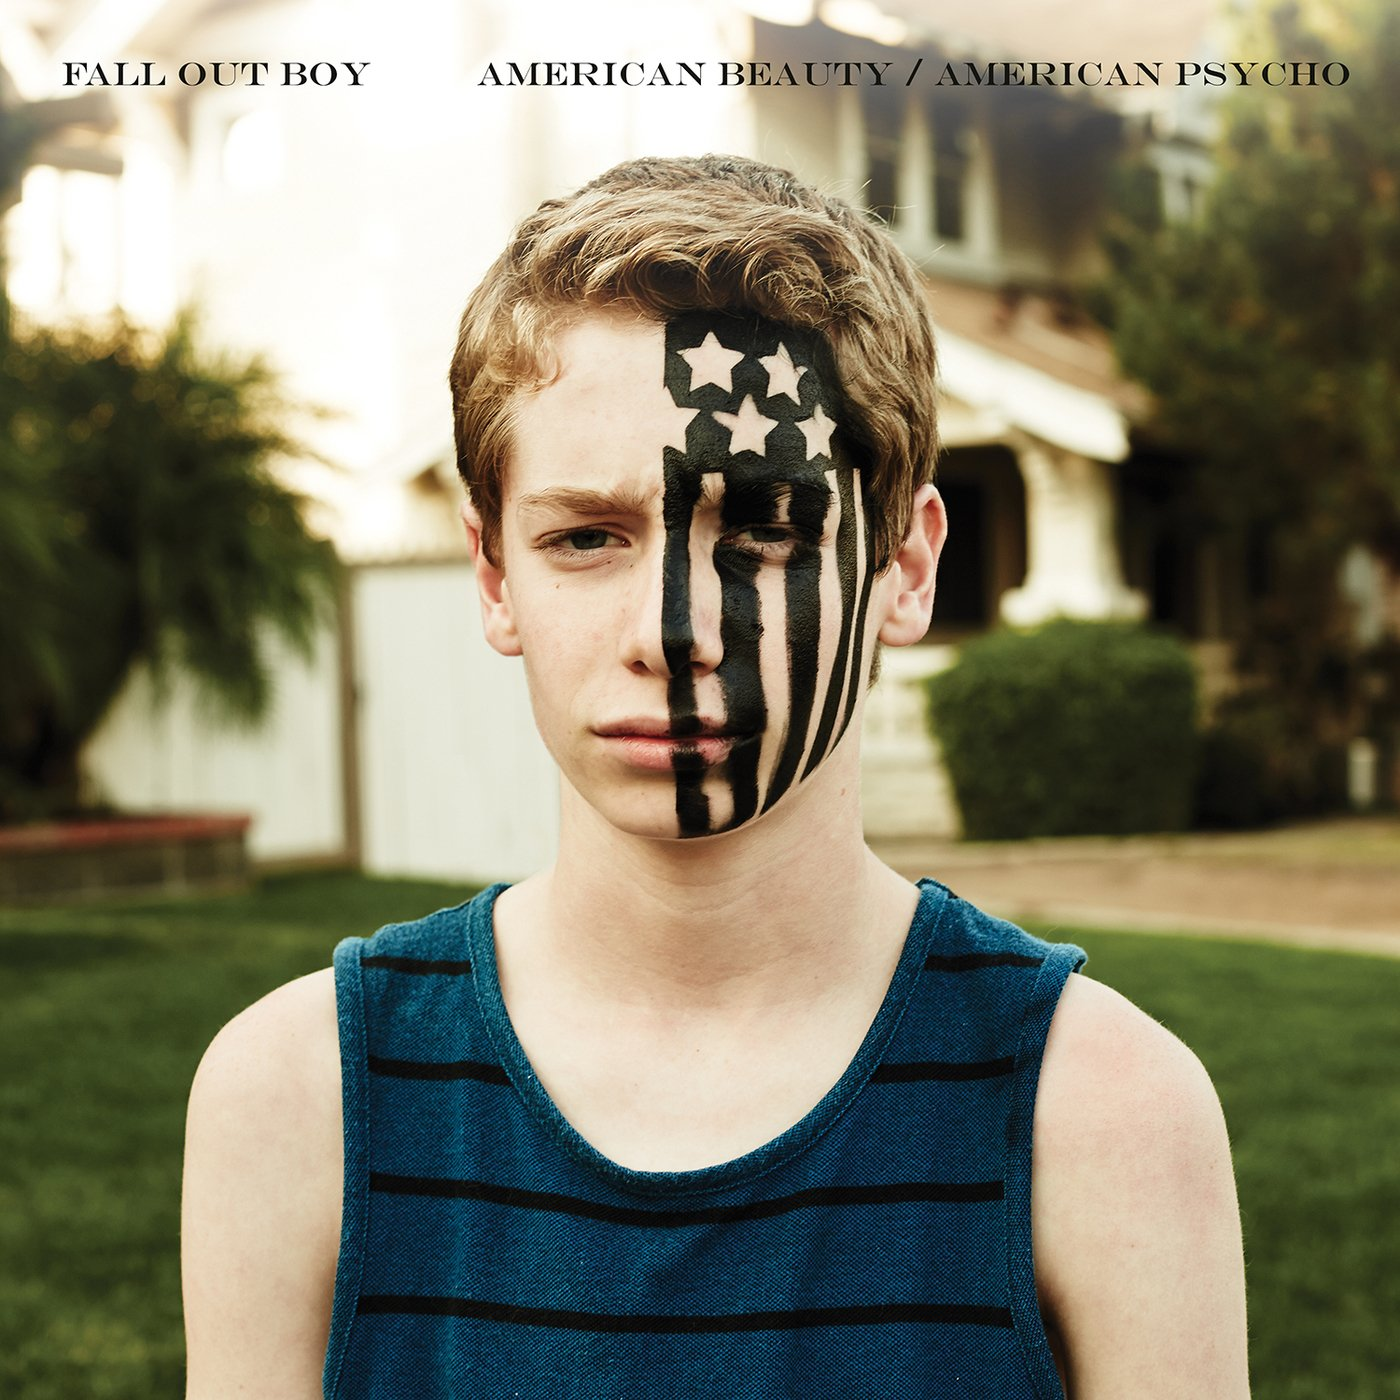 Image result for fall out boy american beauty/american psycho